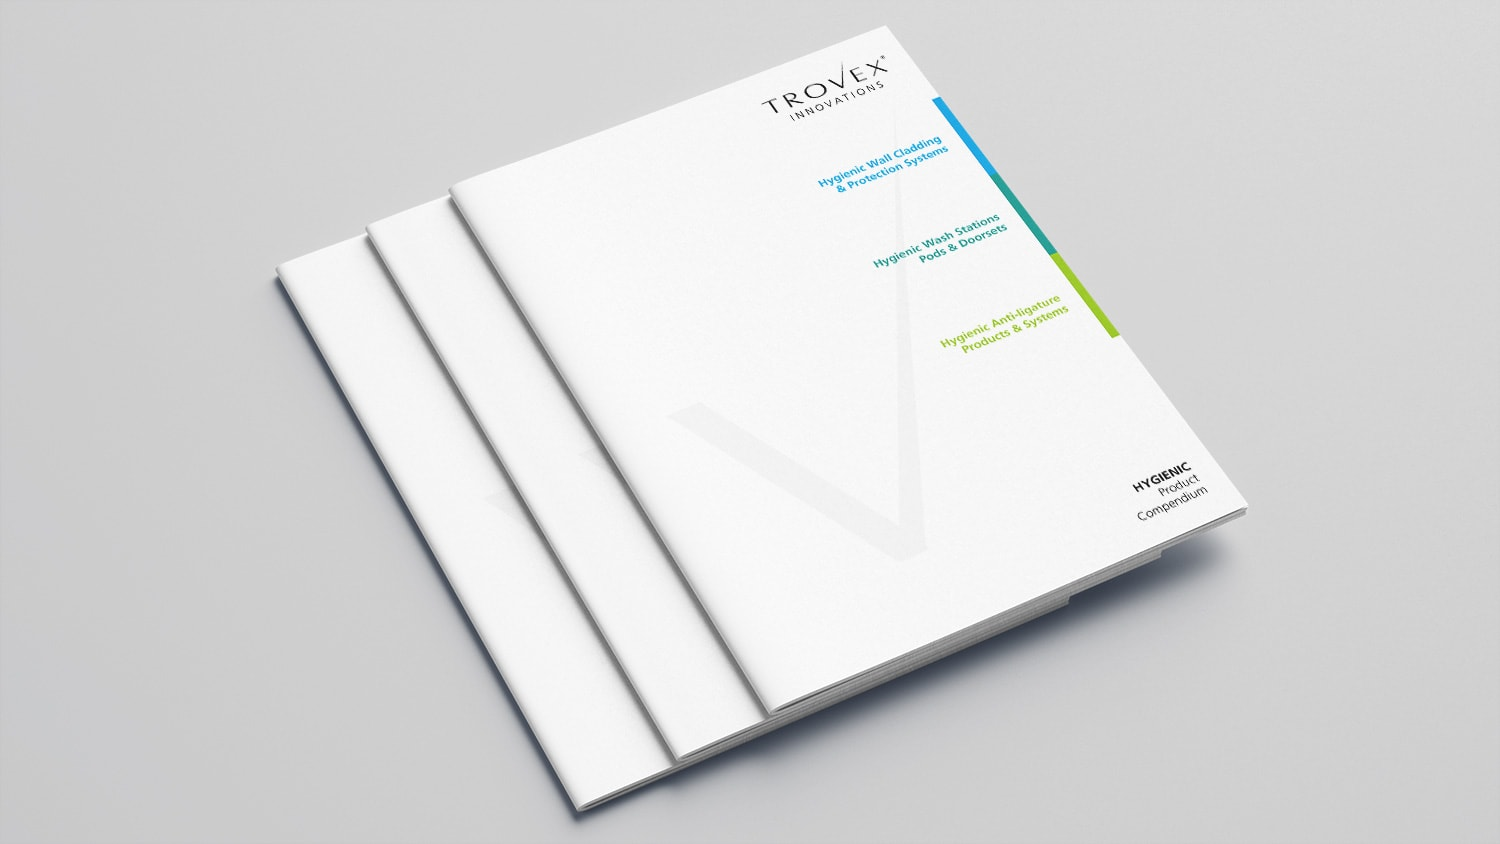 Stacks of Trovex Innovations brochure print design, showing the front cover